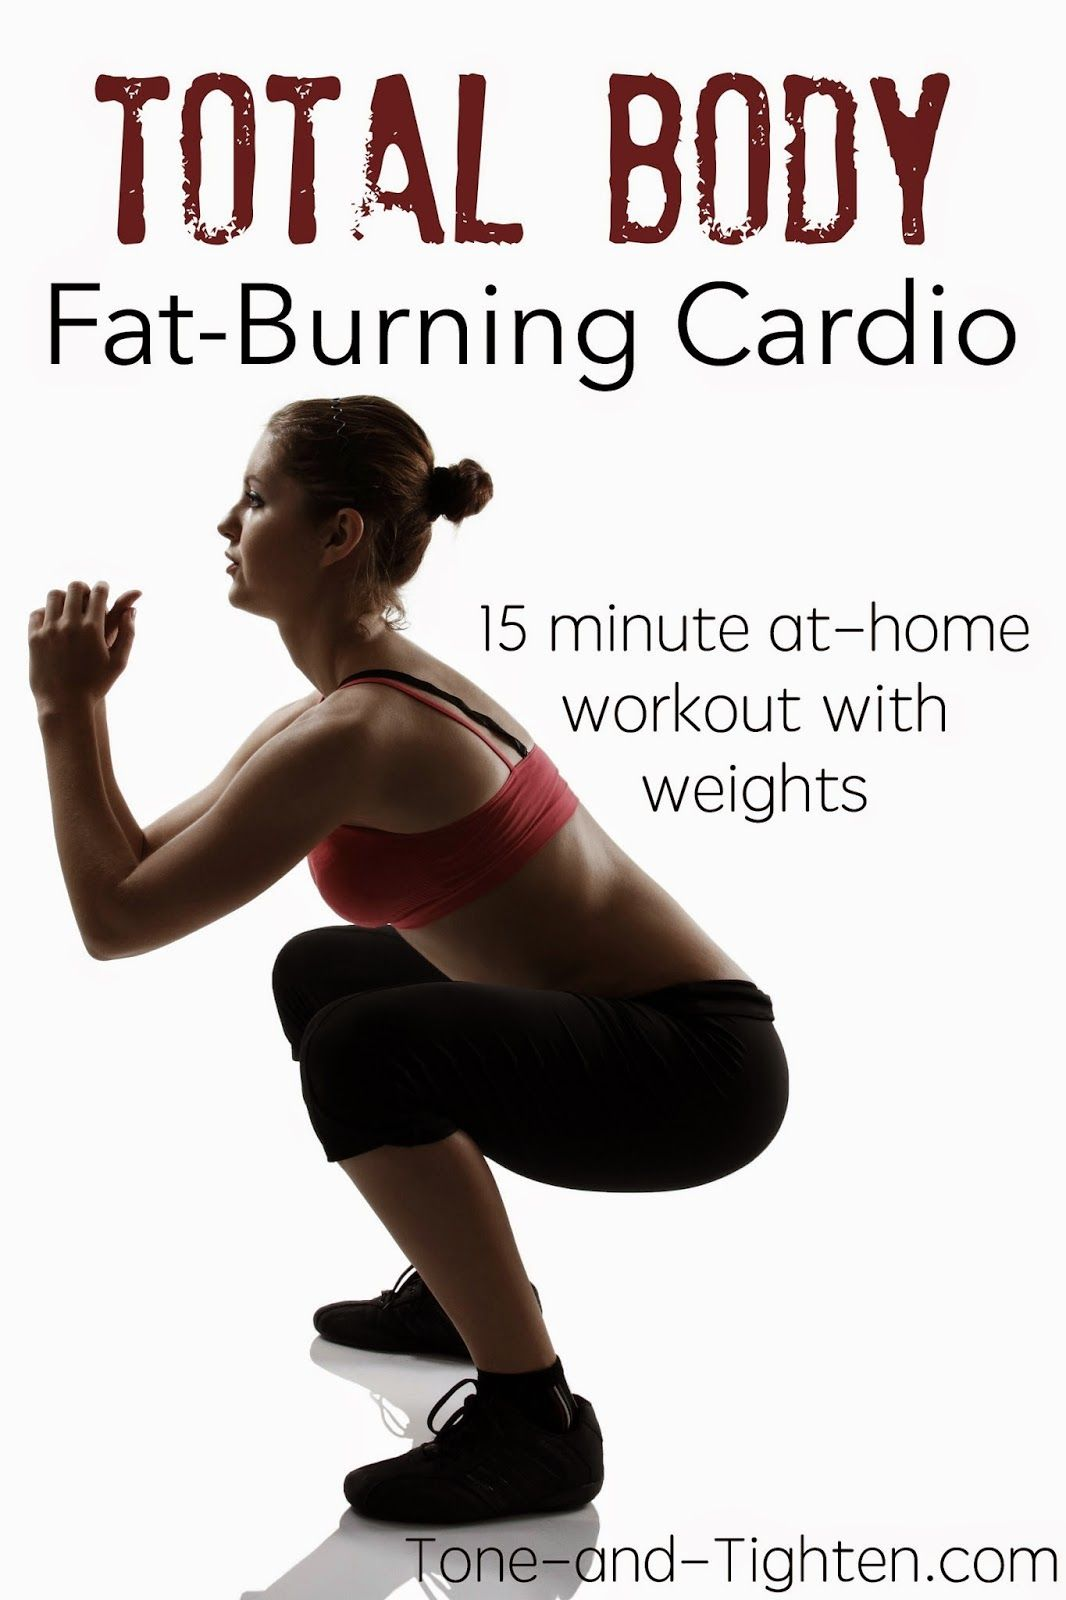 Total Body Fat-Burning Cardio Workout - 15 minutes long, but it was INTENSE!